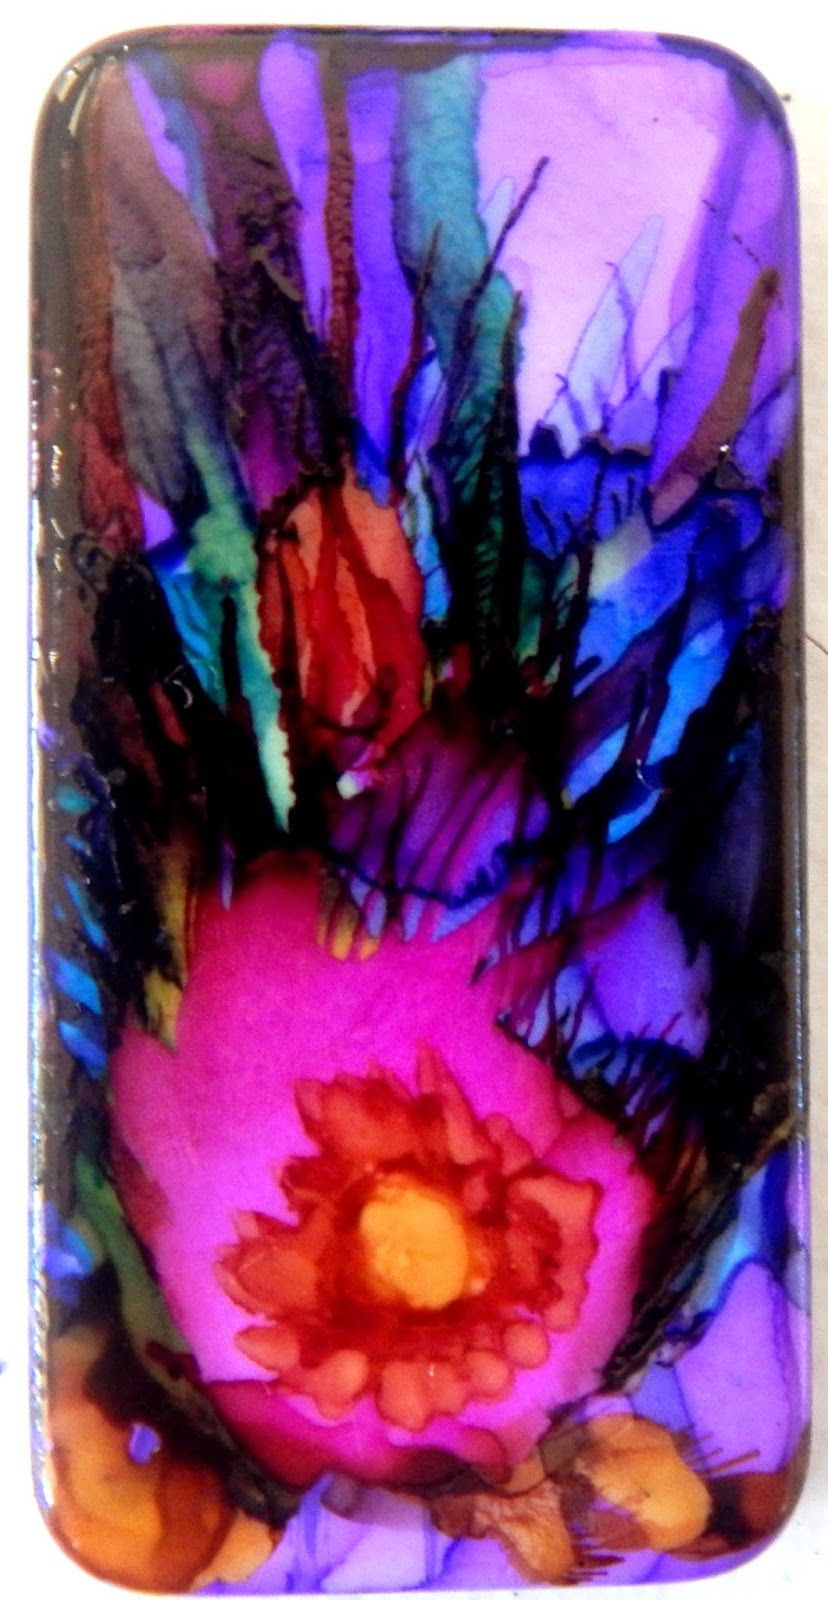 Tipsy gypsy art co alcohol ink on dominoes tiles craft ideas tipsy gypsy art co alcohol ink on dominoes tiles excellent tutorial here baditri Images